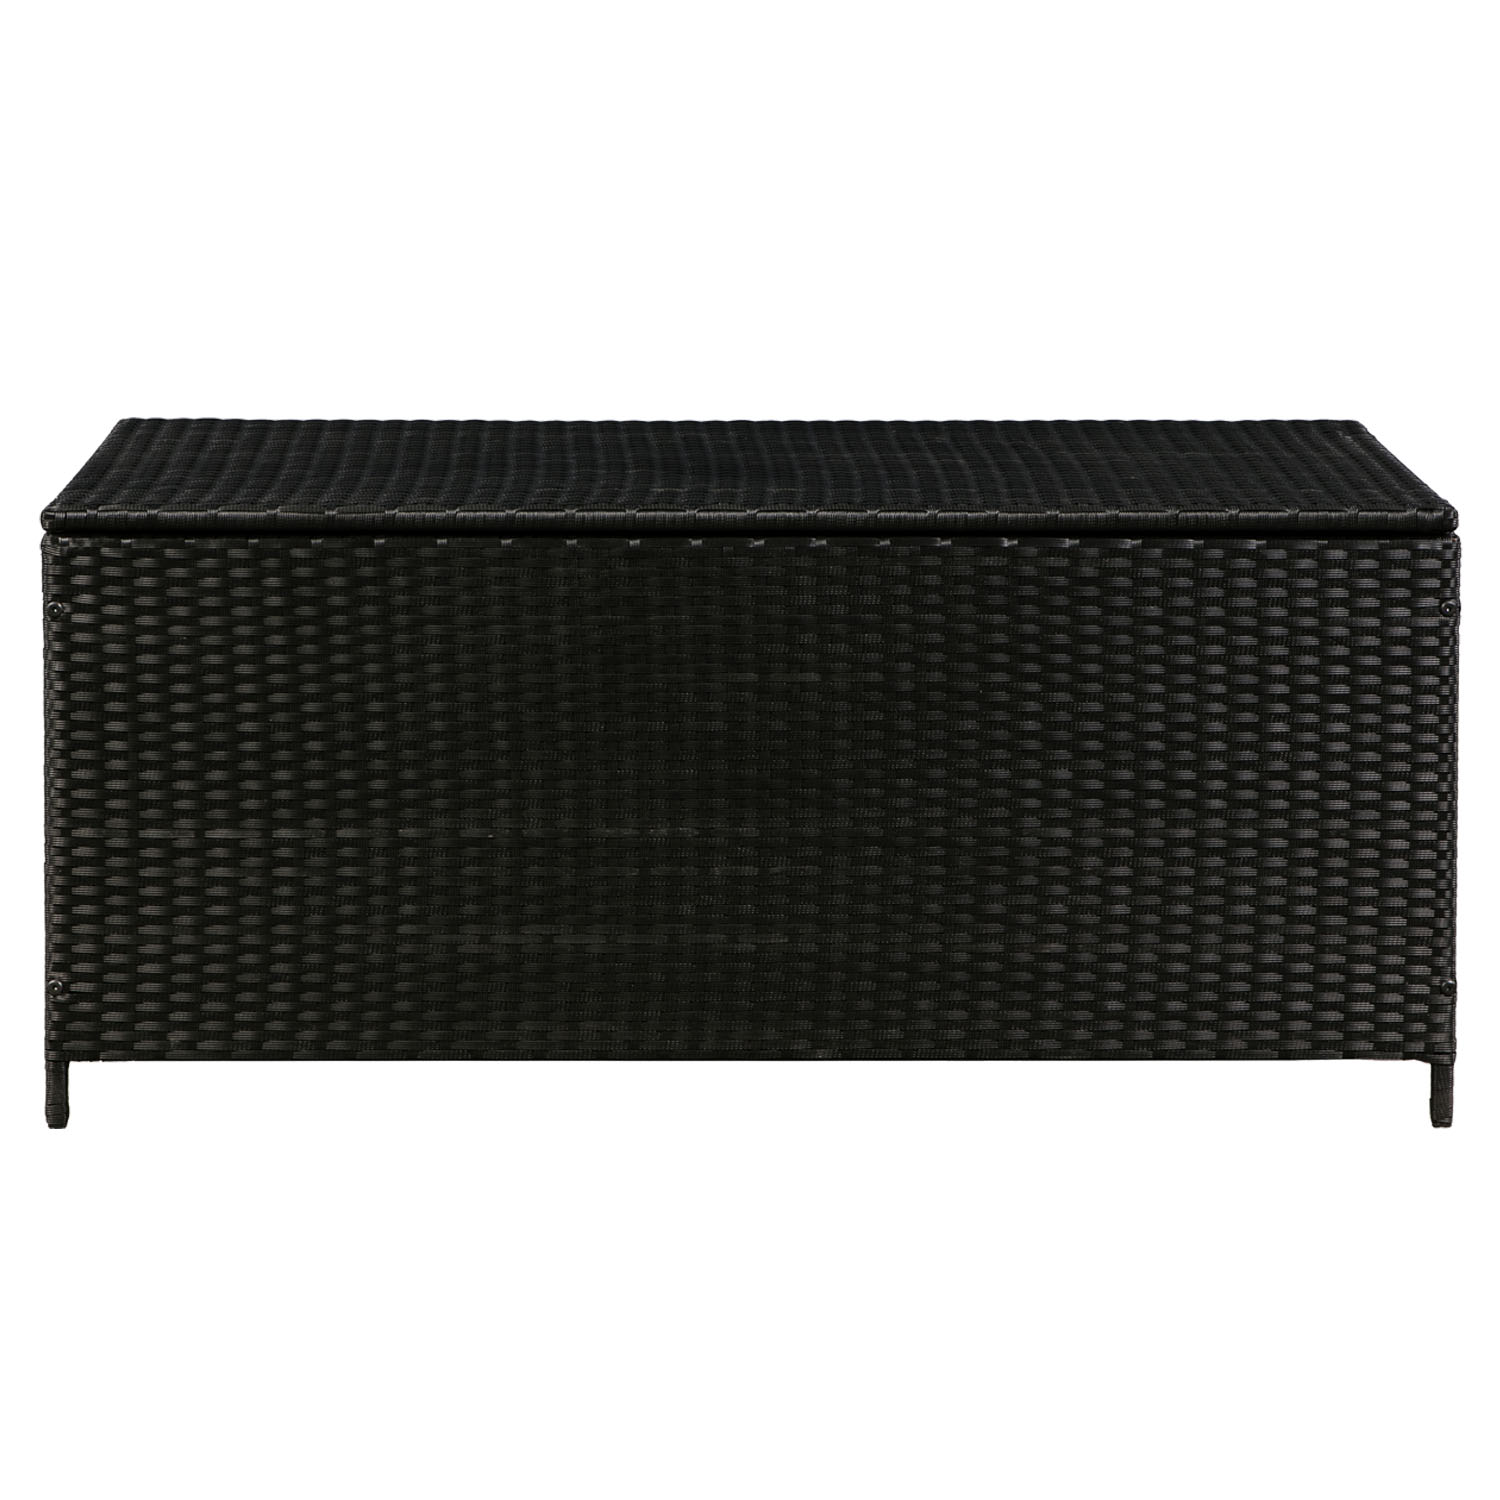 auflagenbox polyrattan kissenbox gartenbox gartentruhe kiste aufbewahrungsbox ebay. Black Bedroom Furniture Sets. Home Design Ideas